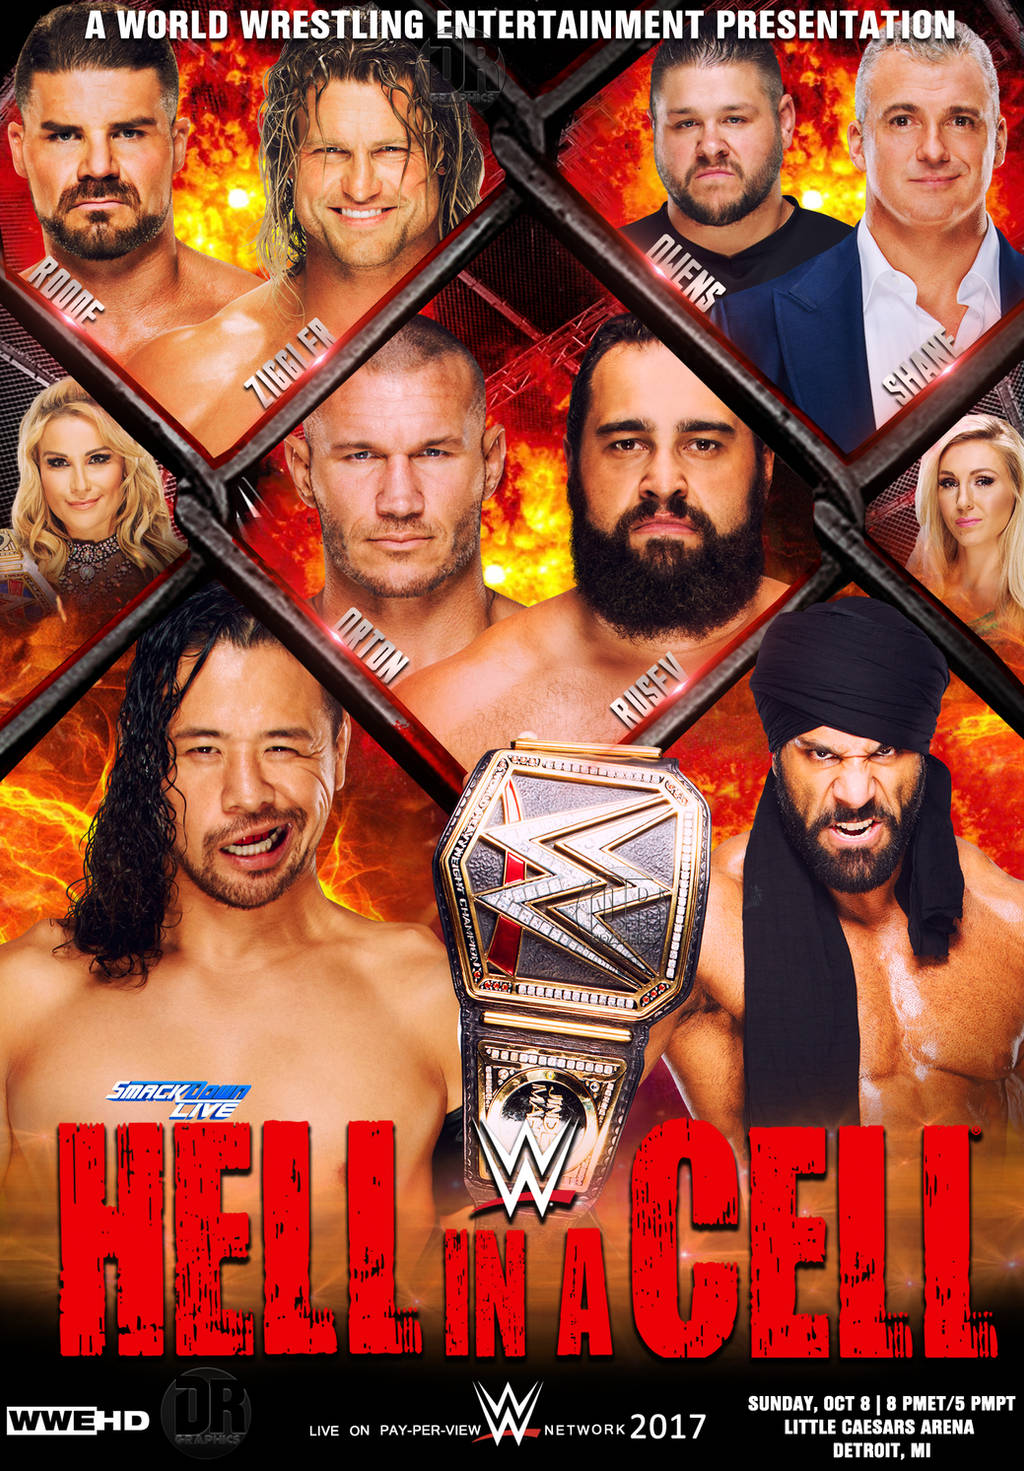 WWE Hell In A Cell 2017 Poster v2 by Dinesh-Musiclover